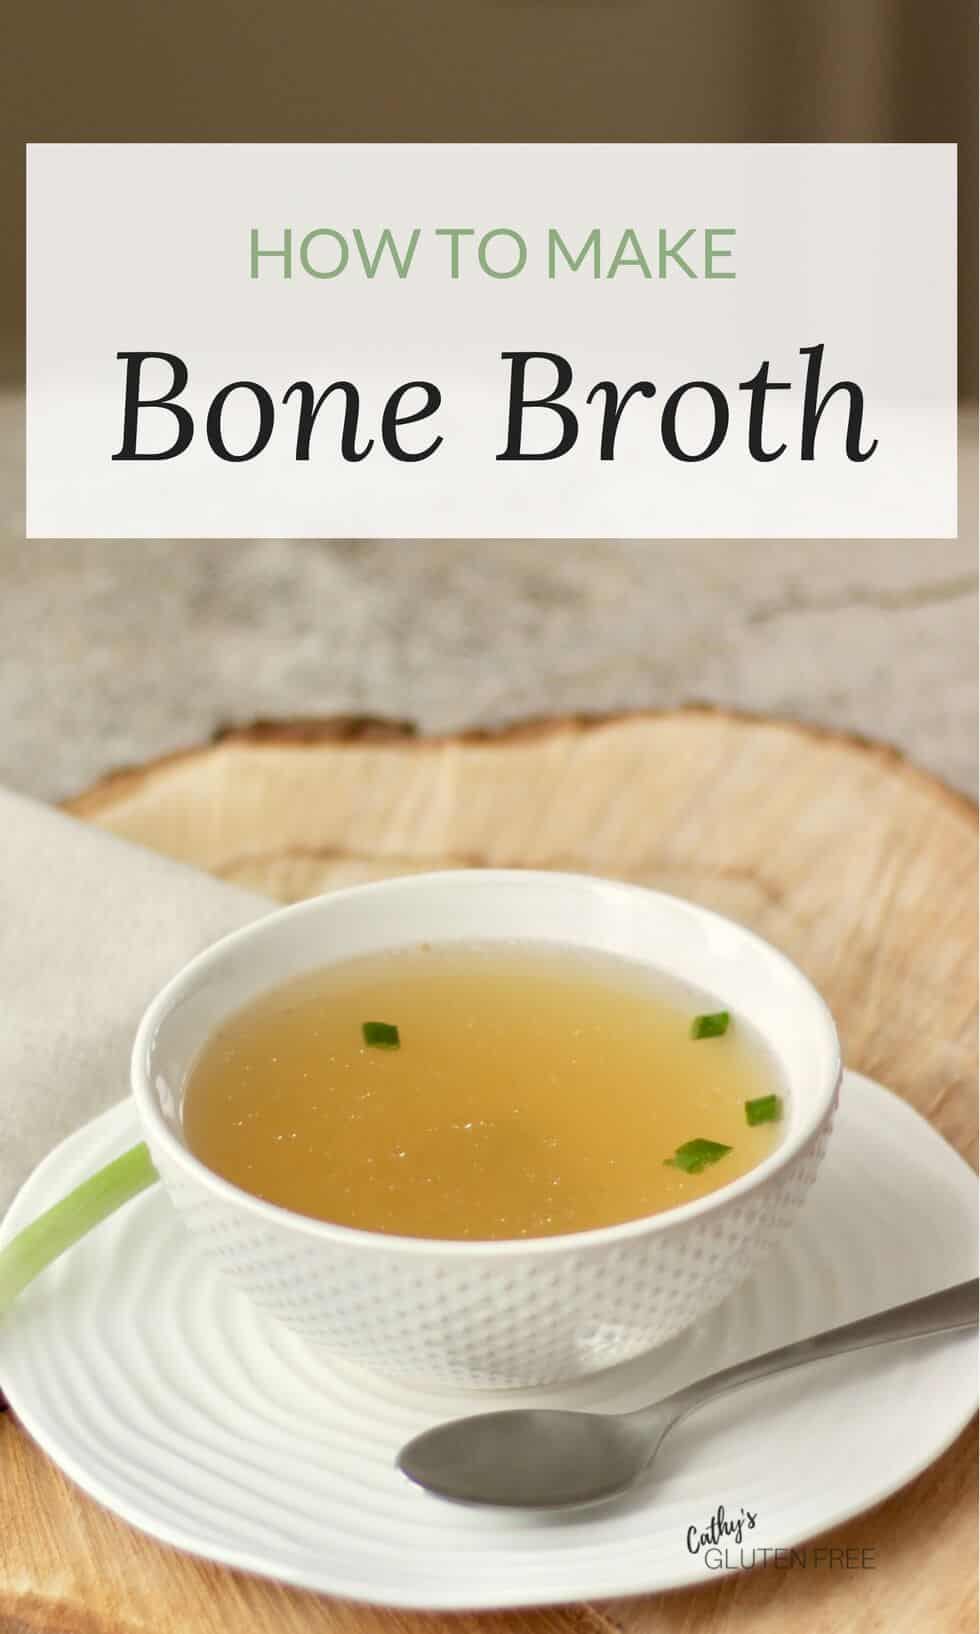 Make your own bone broth.